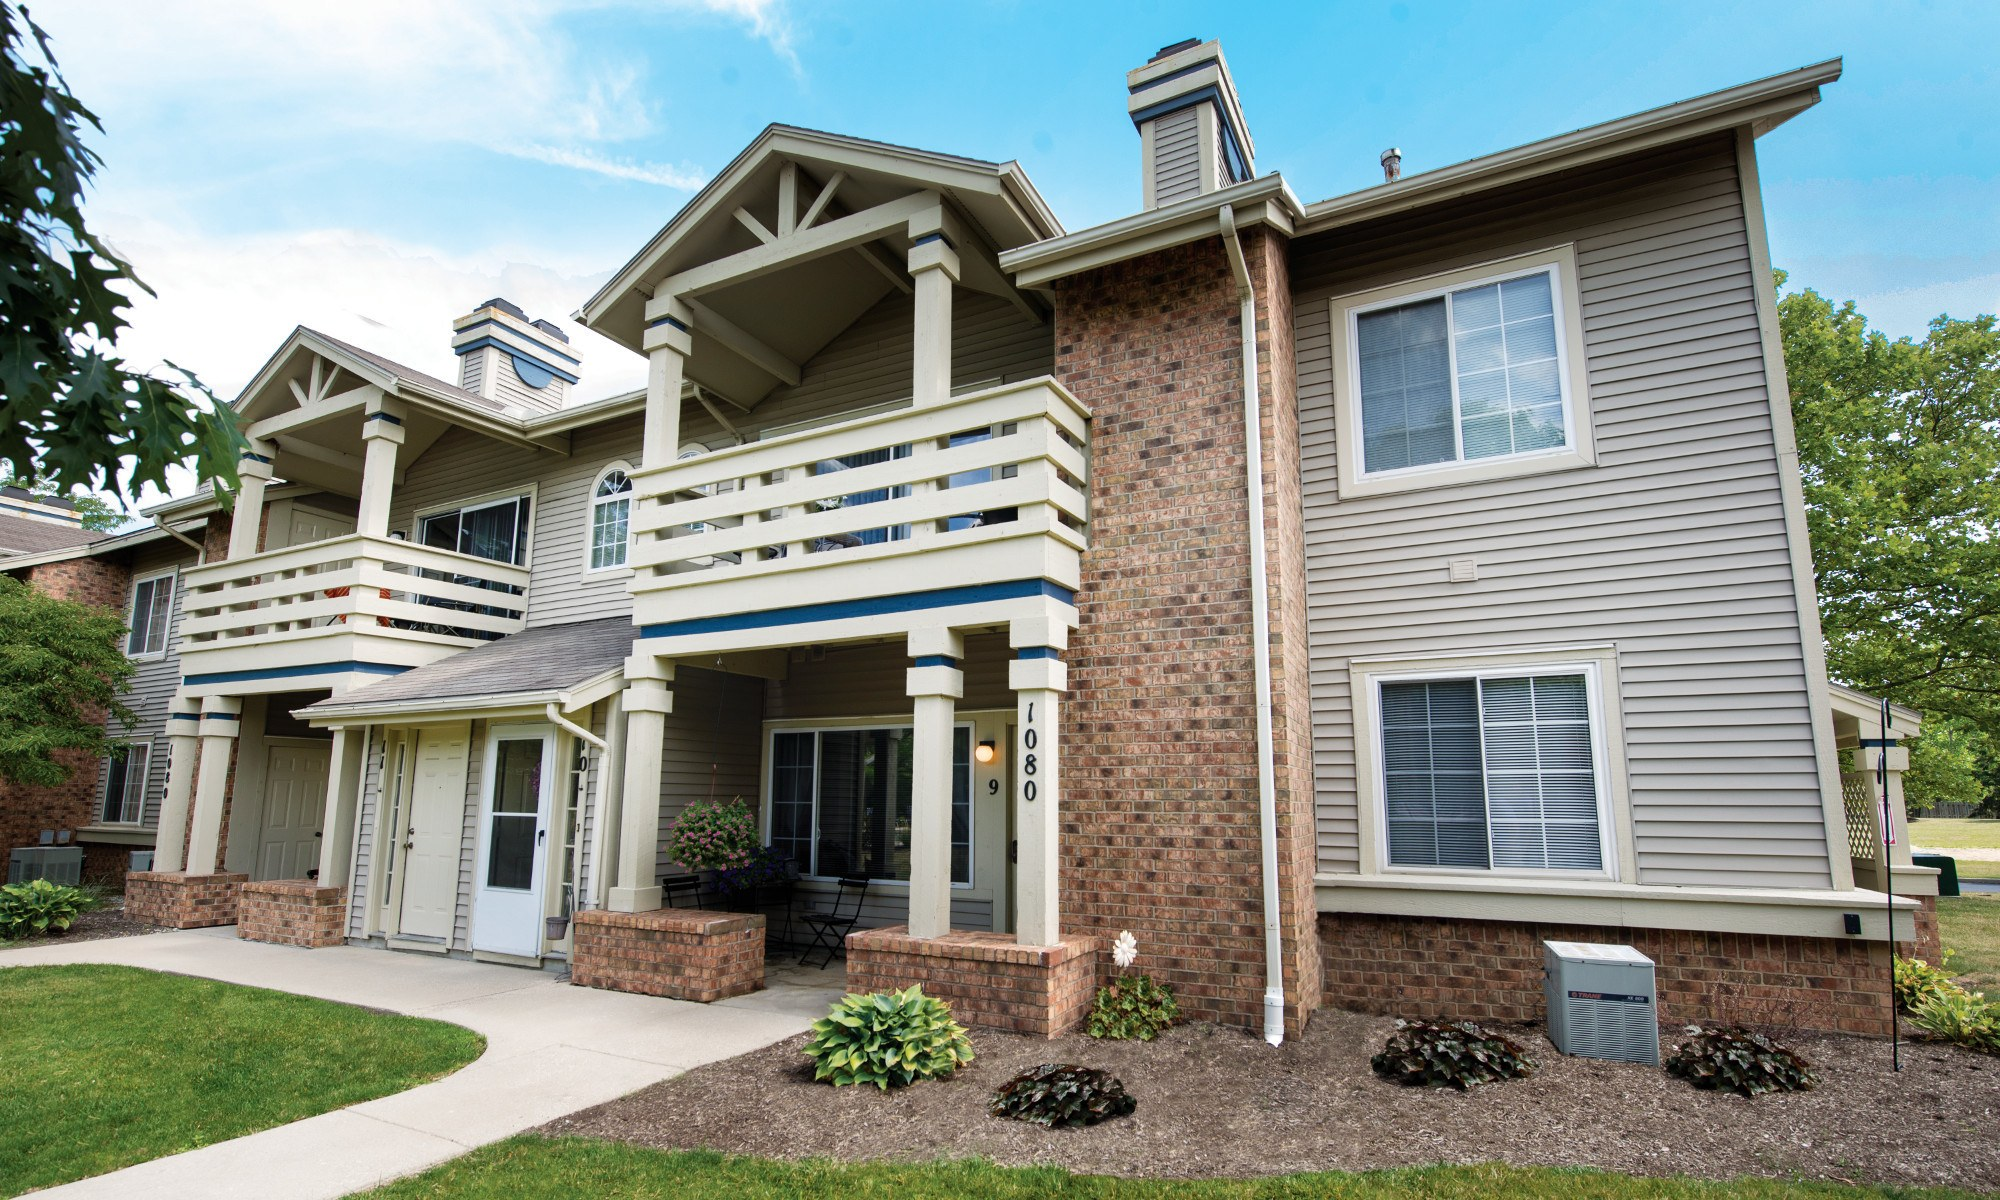 Welcome to Perry's Crossing Apartments in Perrysburg, OH